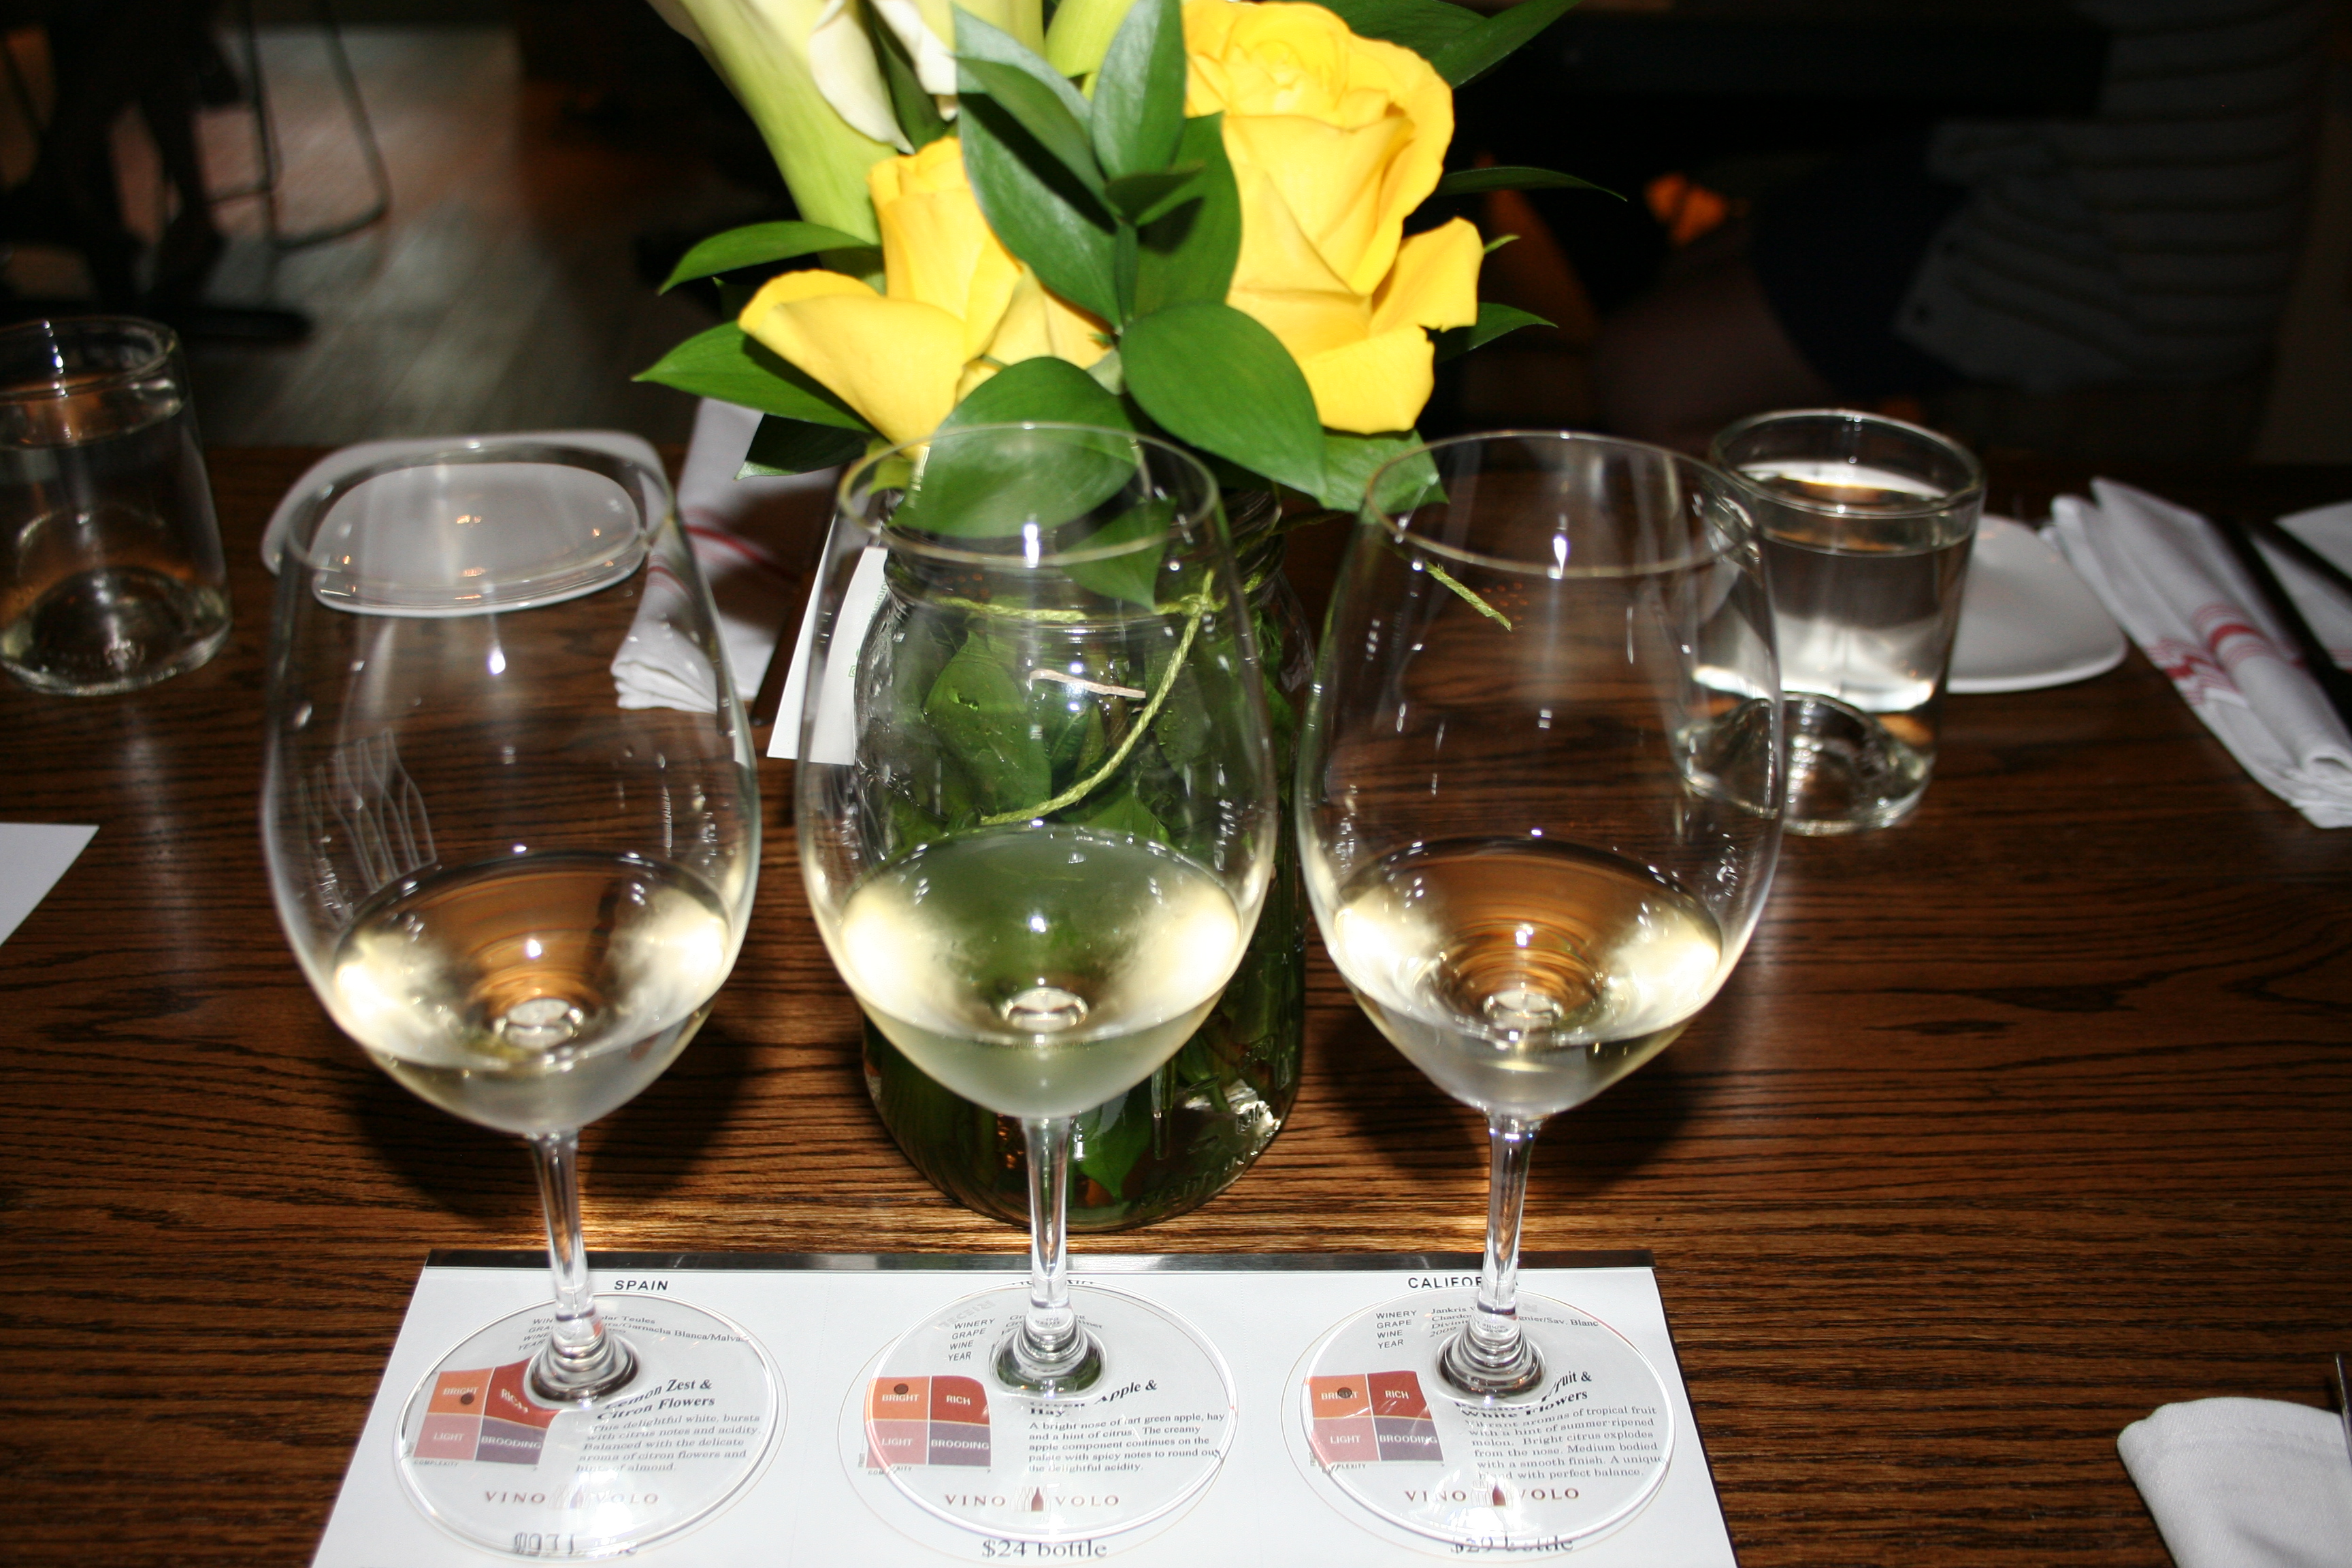 The White Hot Summer Flight of white wines at Vino Volo. (Photo: Mark Heckathorn/DC on Heels)